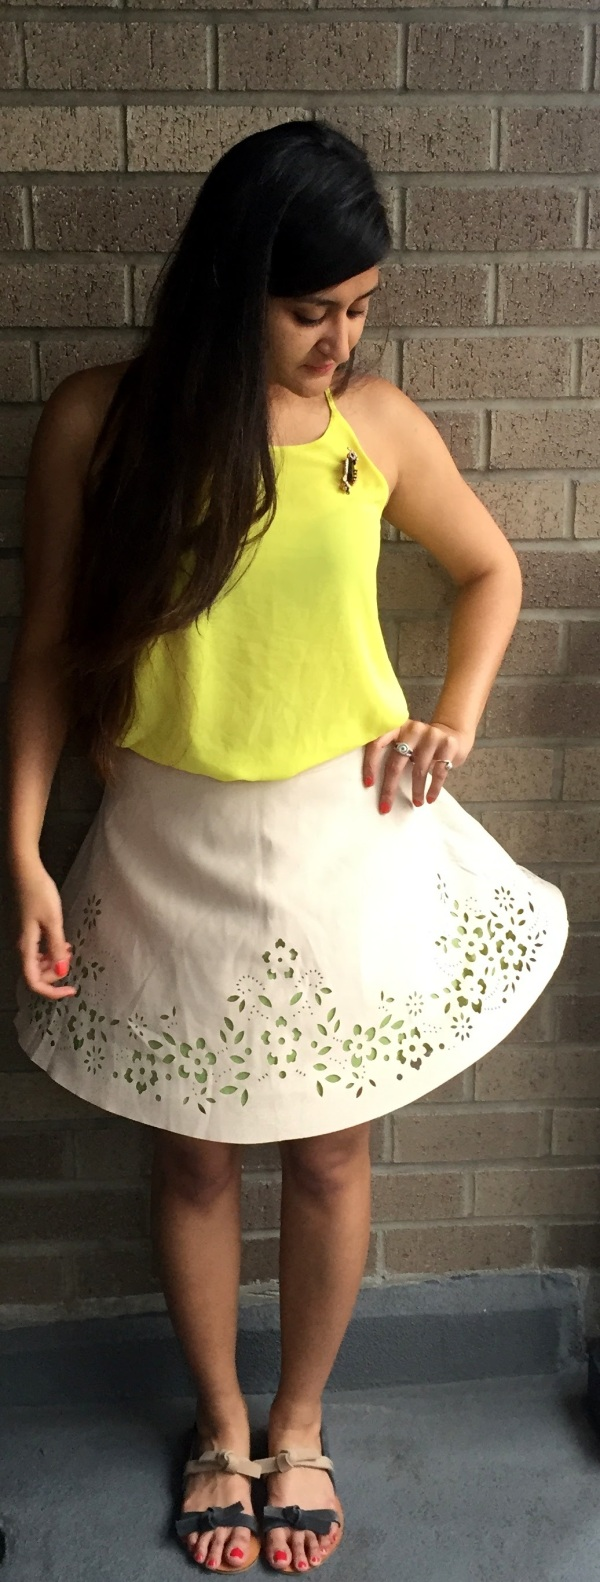 Summer Outfit Ideas 2016 2